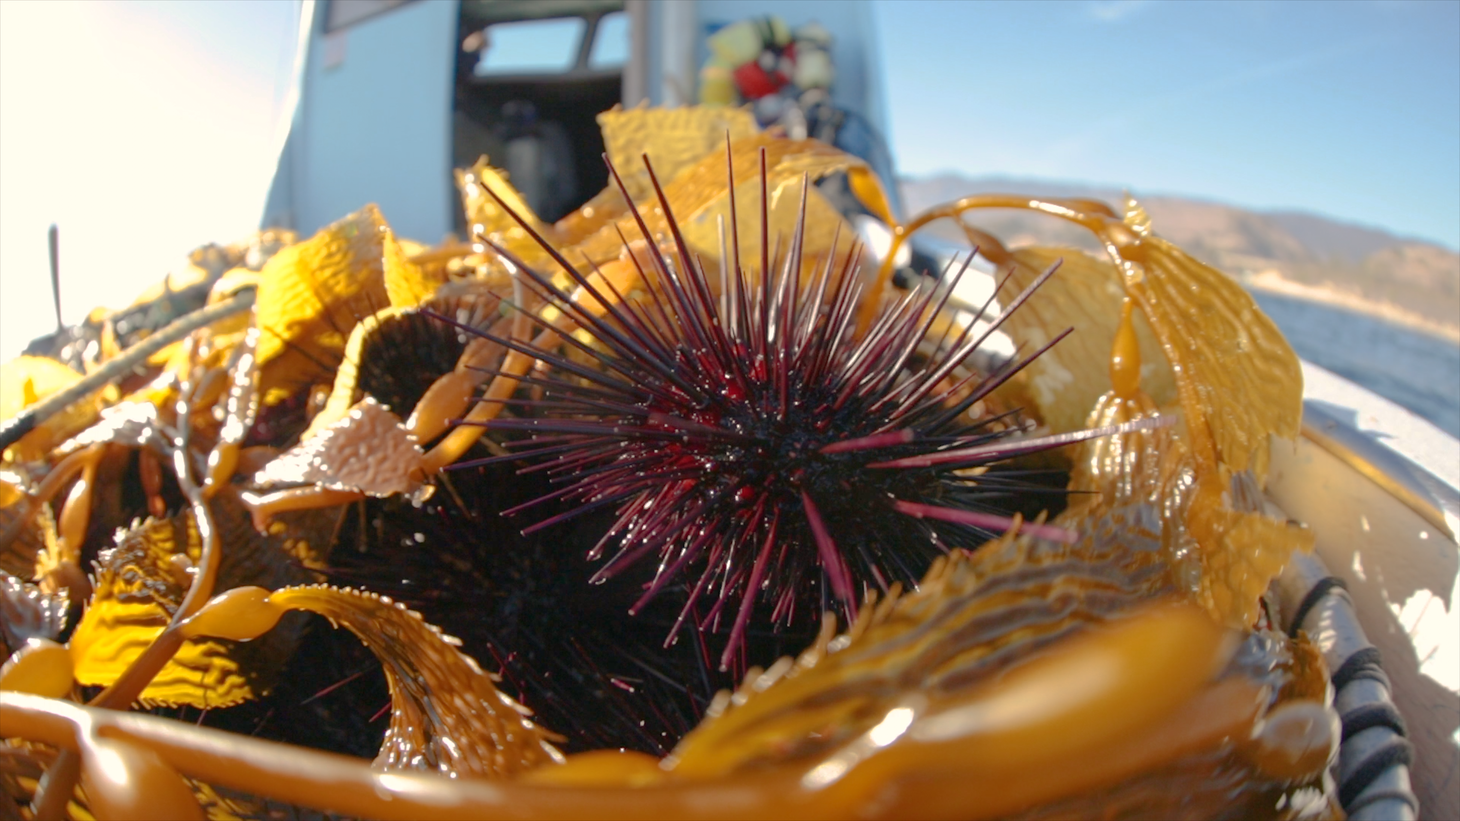 Sea urchin on the boat.